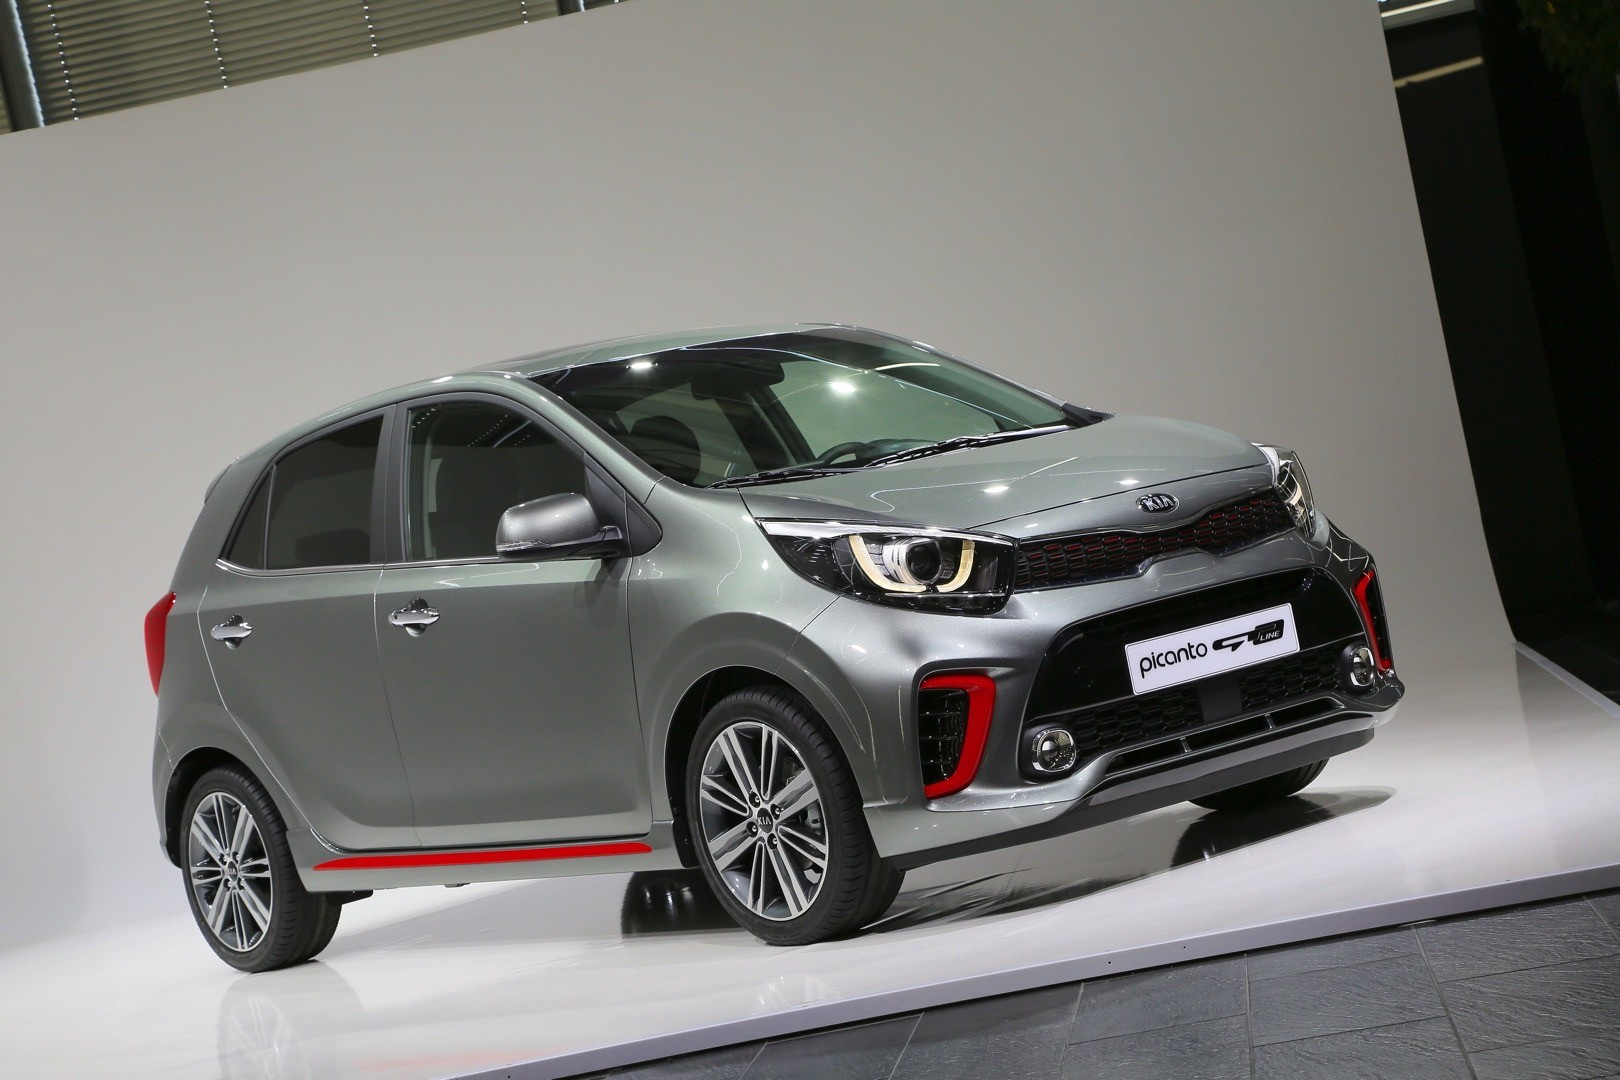 2017 kia picanto specifications revealed 1 0 t gdi engine. Black Bedroom Furniture Sets. Home Design Ideas